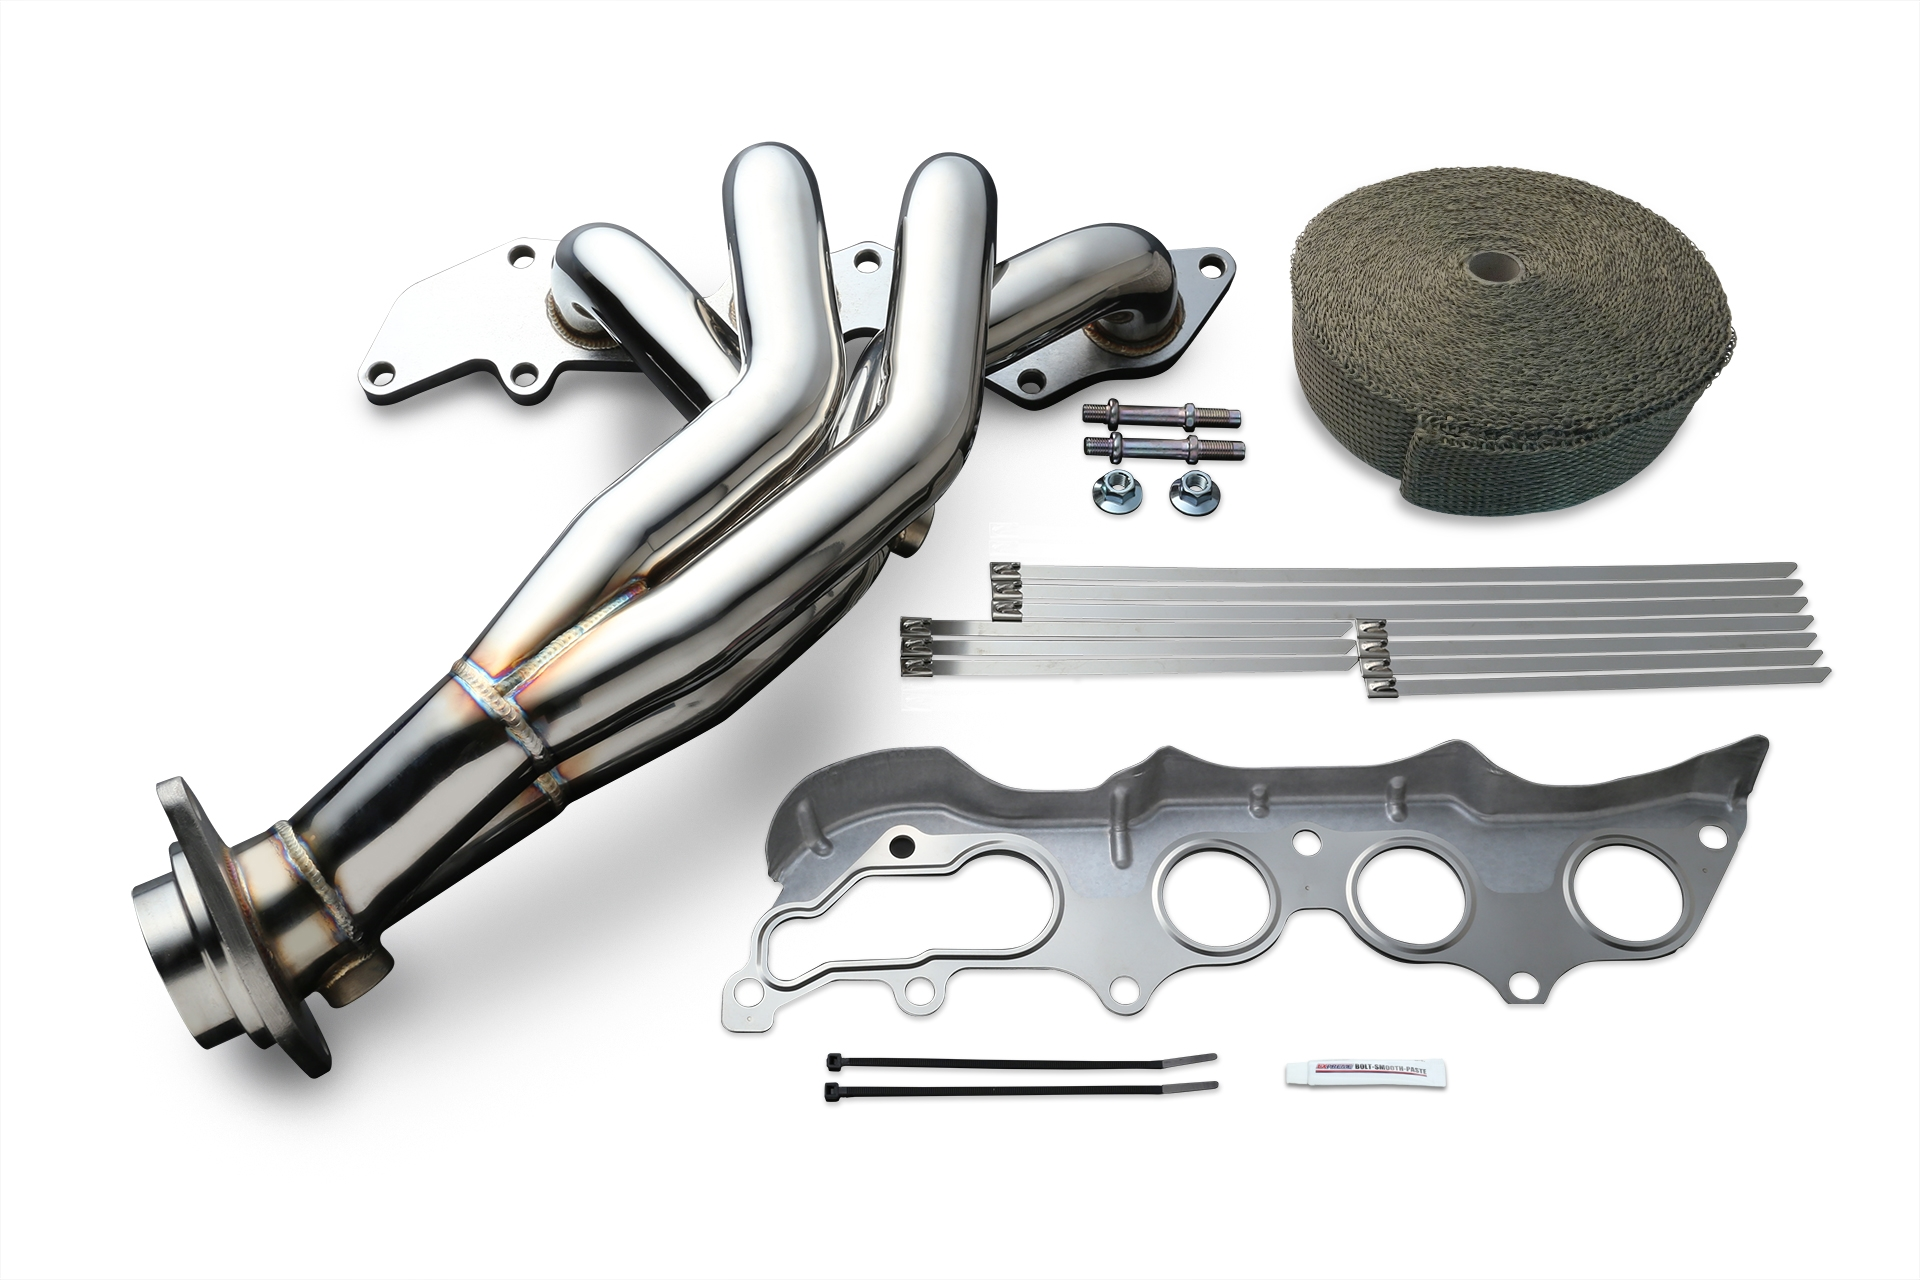 Exhaust System :: Exhaust Manifolds & Headers - Concept Z